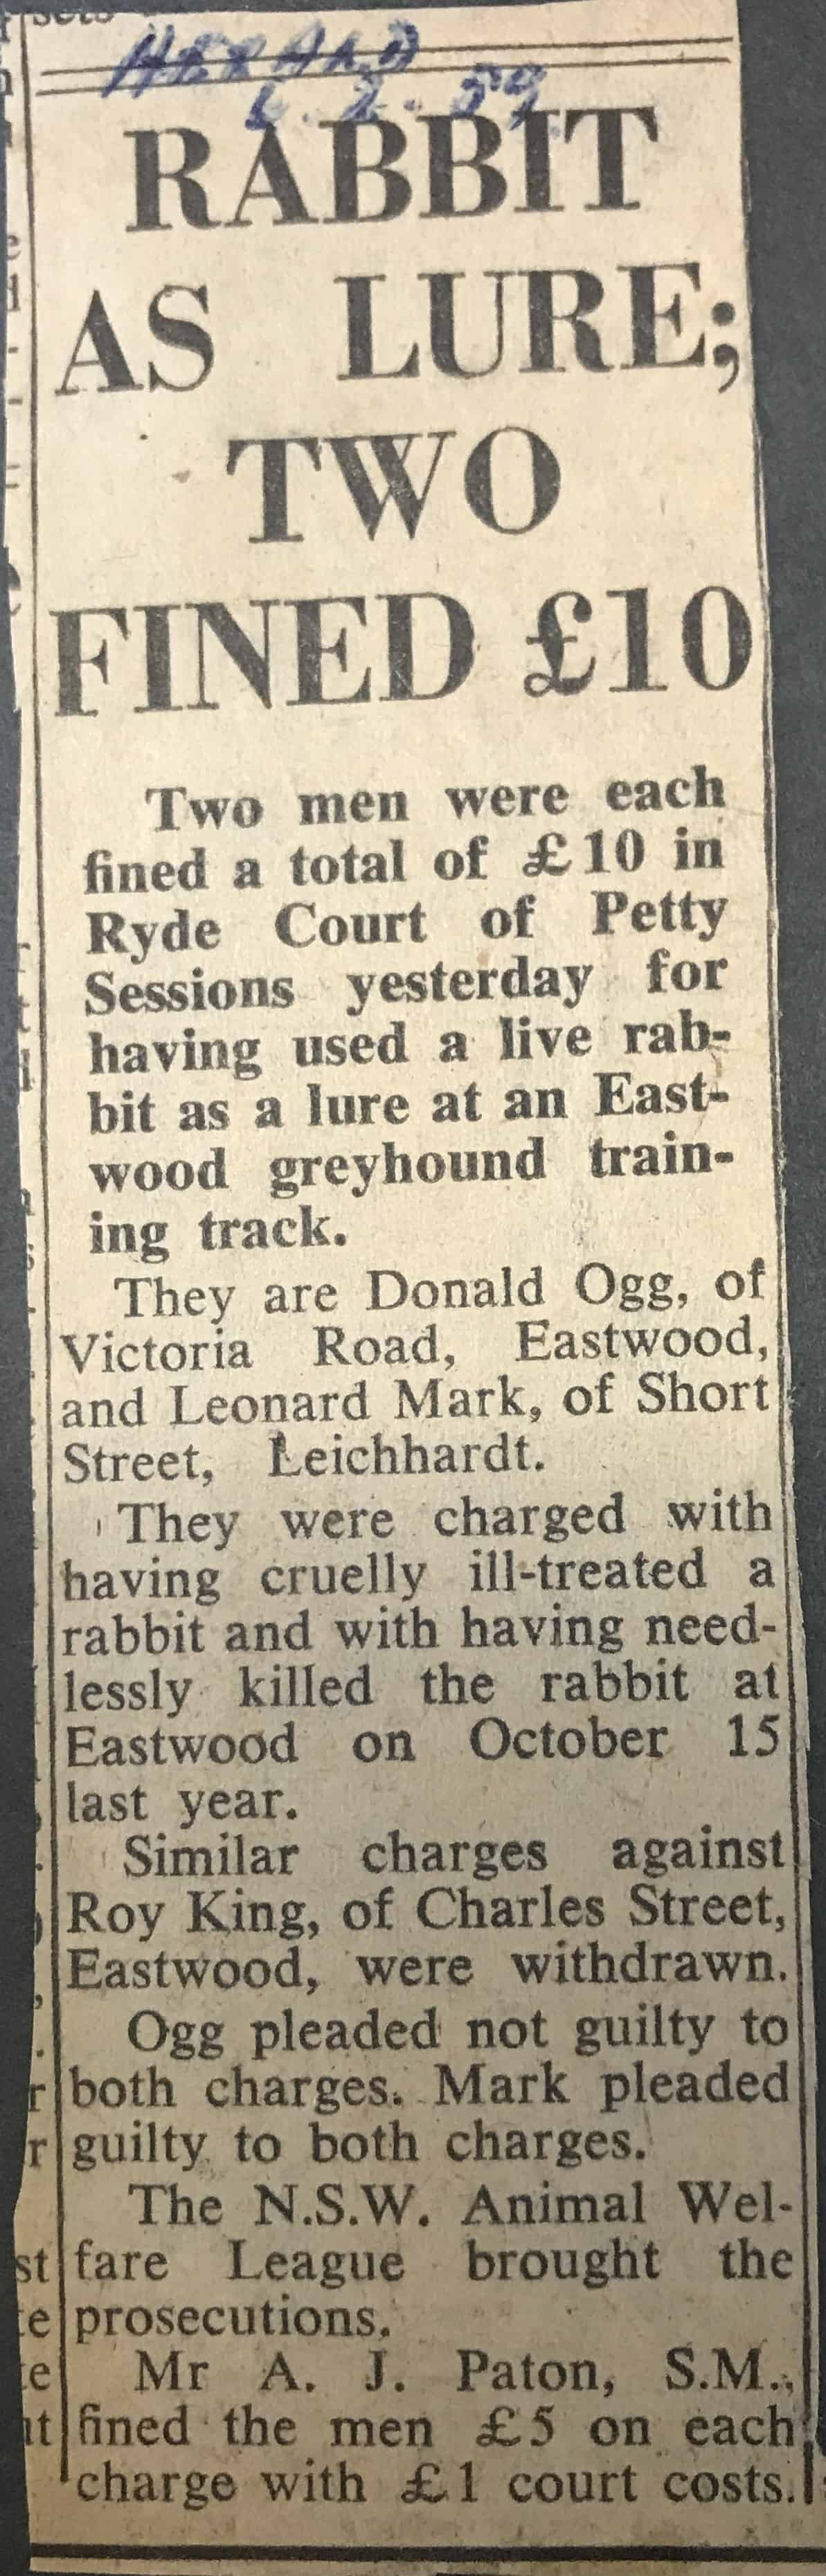 News article on rabbit lure prosecution